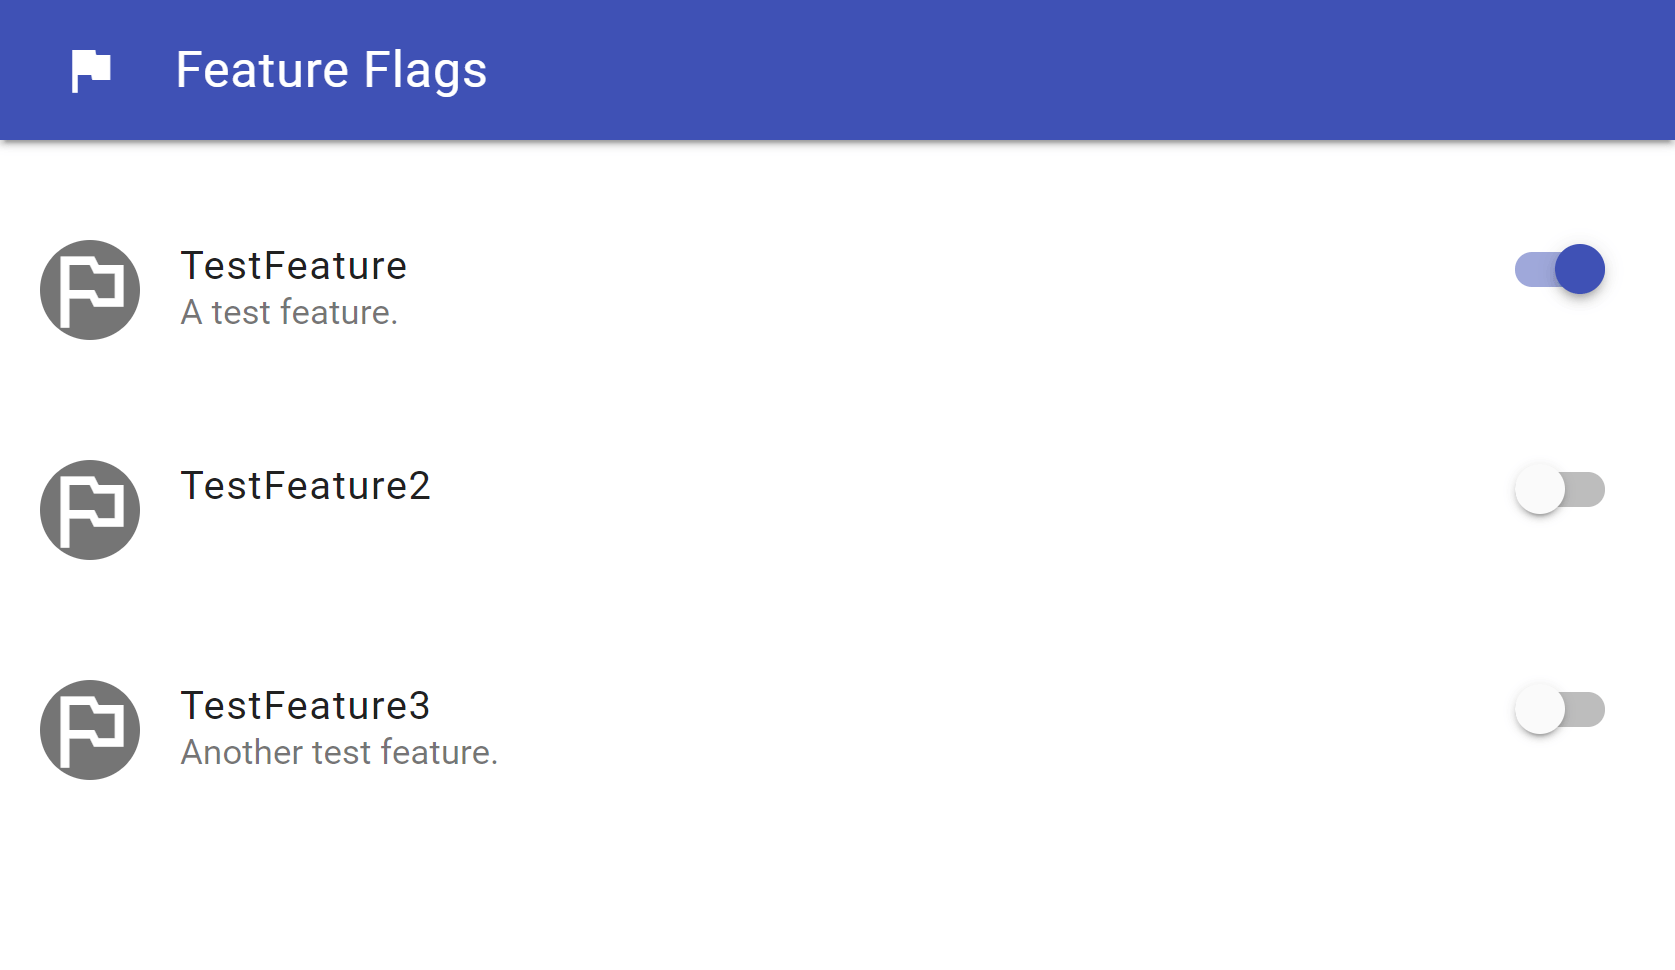 Enabling and disabling feature flags using the UI